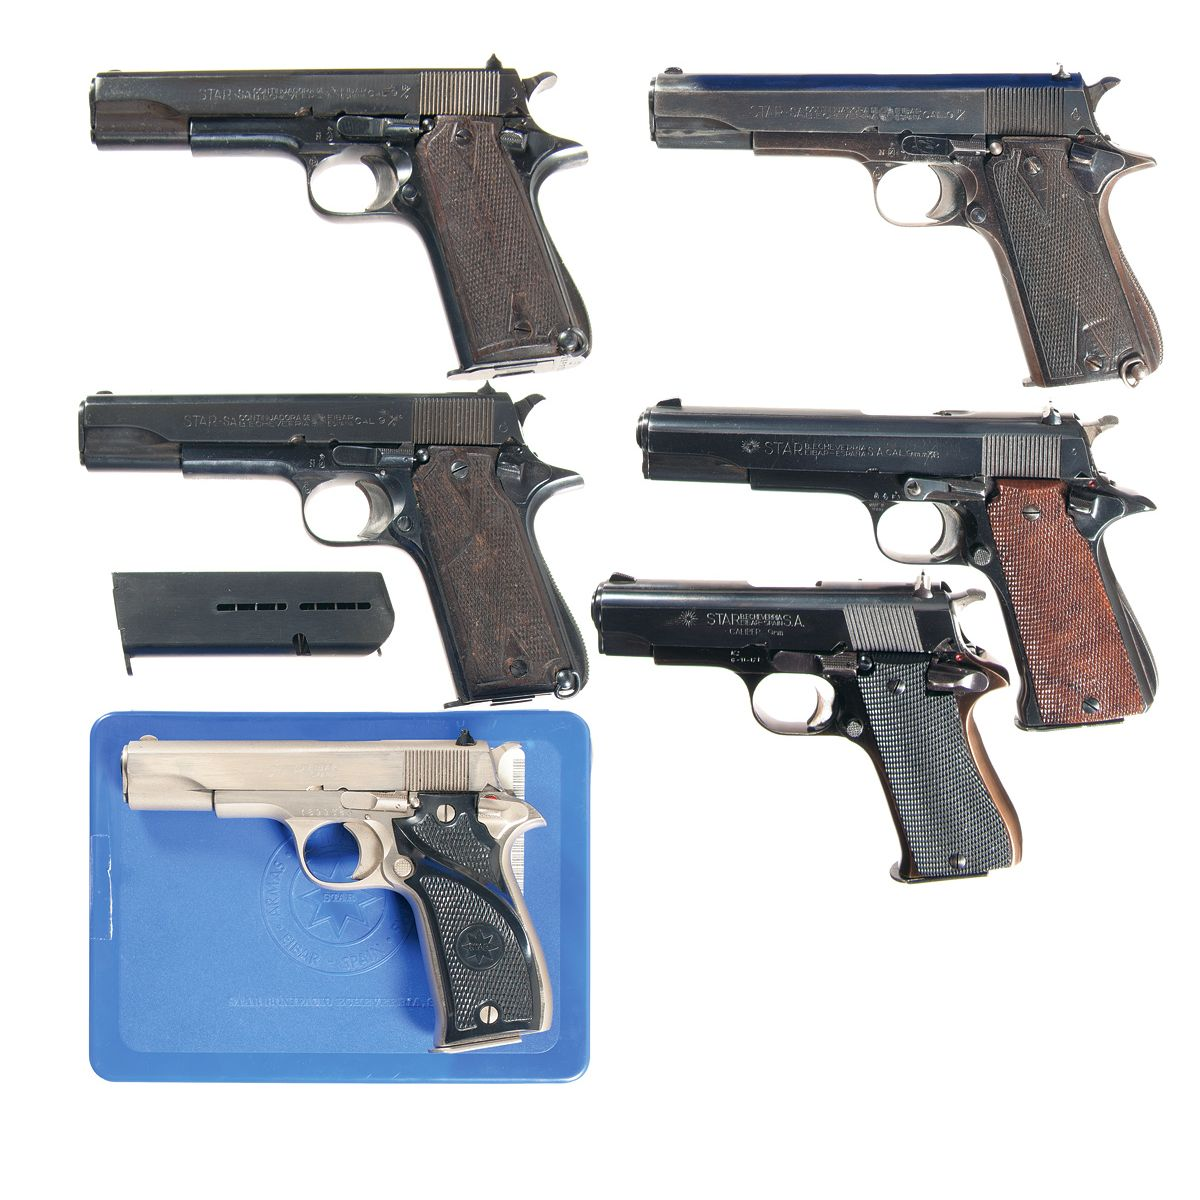 hight resolution of image 1 six star semi automatic pistols a rare nazi proofed star